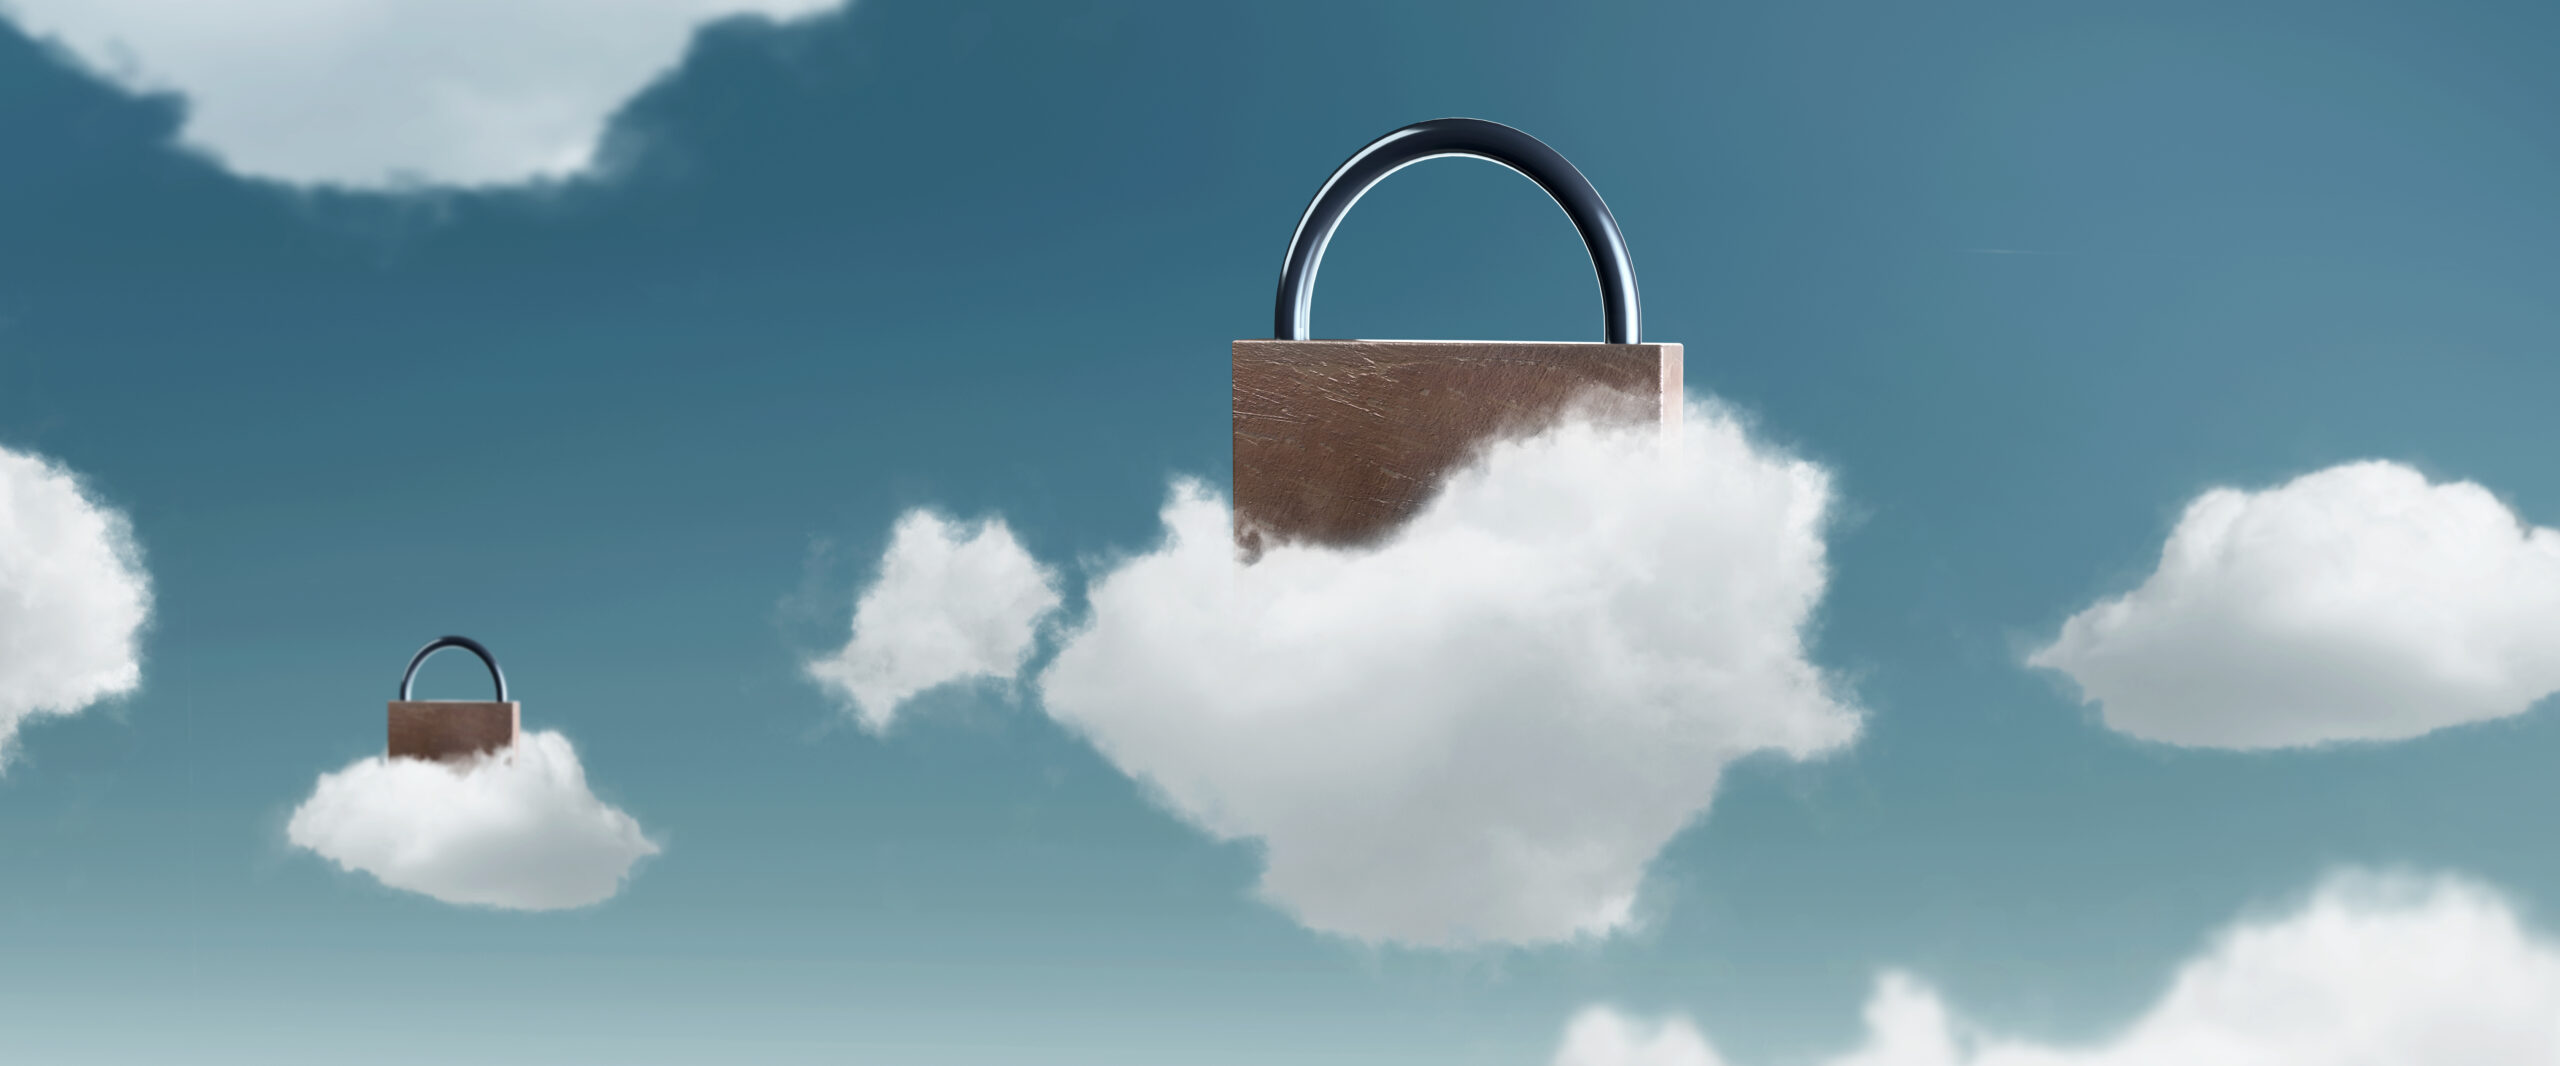 5 Tips for Staying Safe on the Cloud